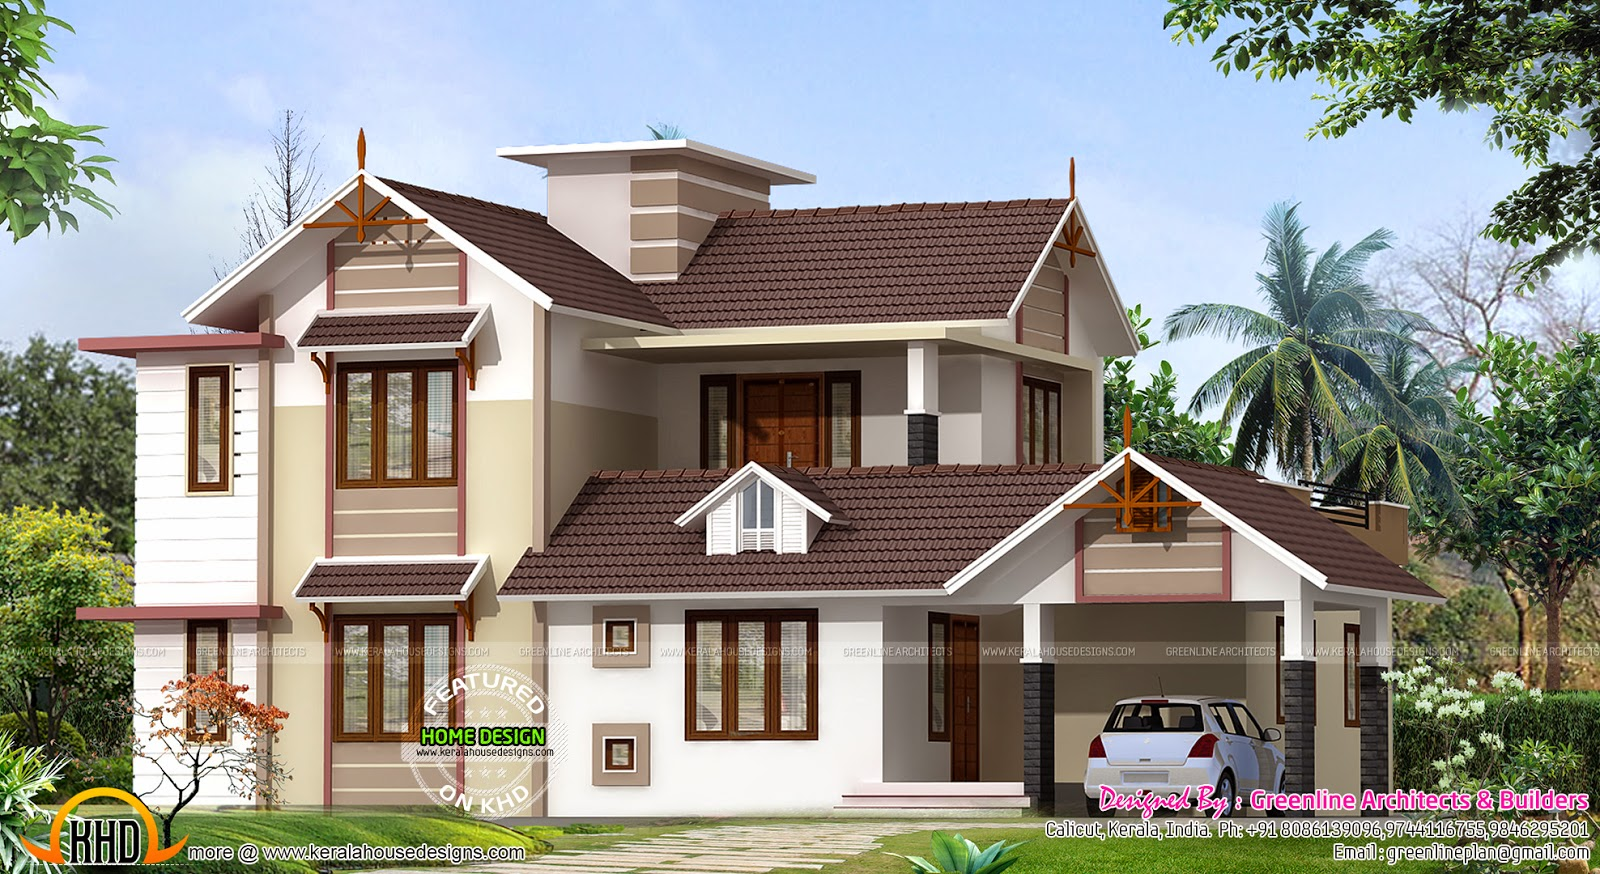 2400 sq ft new house design kerala home design and floor for New home designs pictures